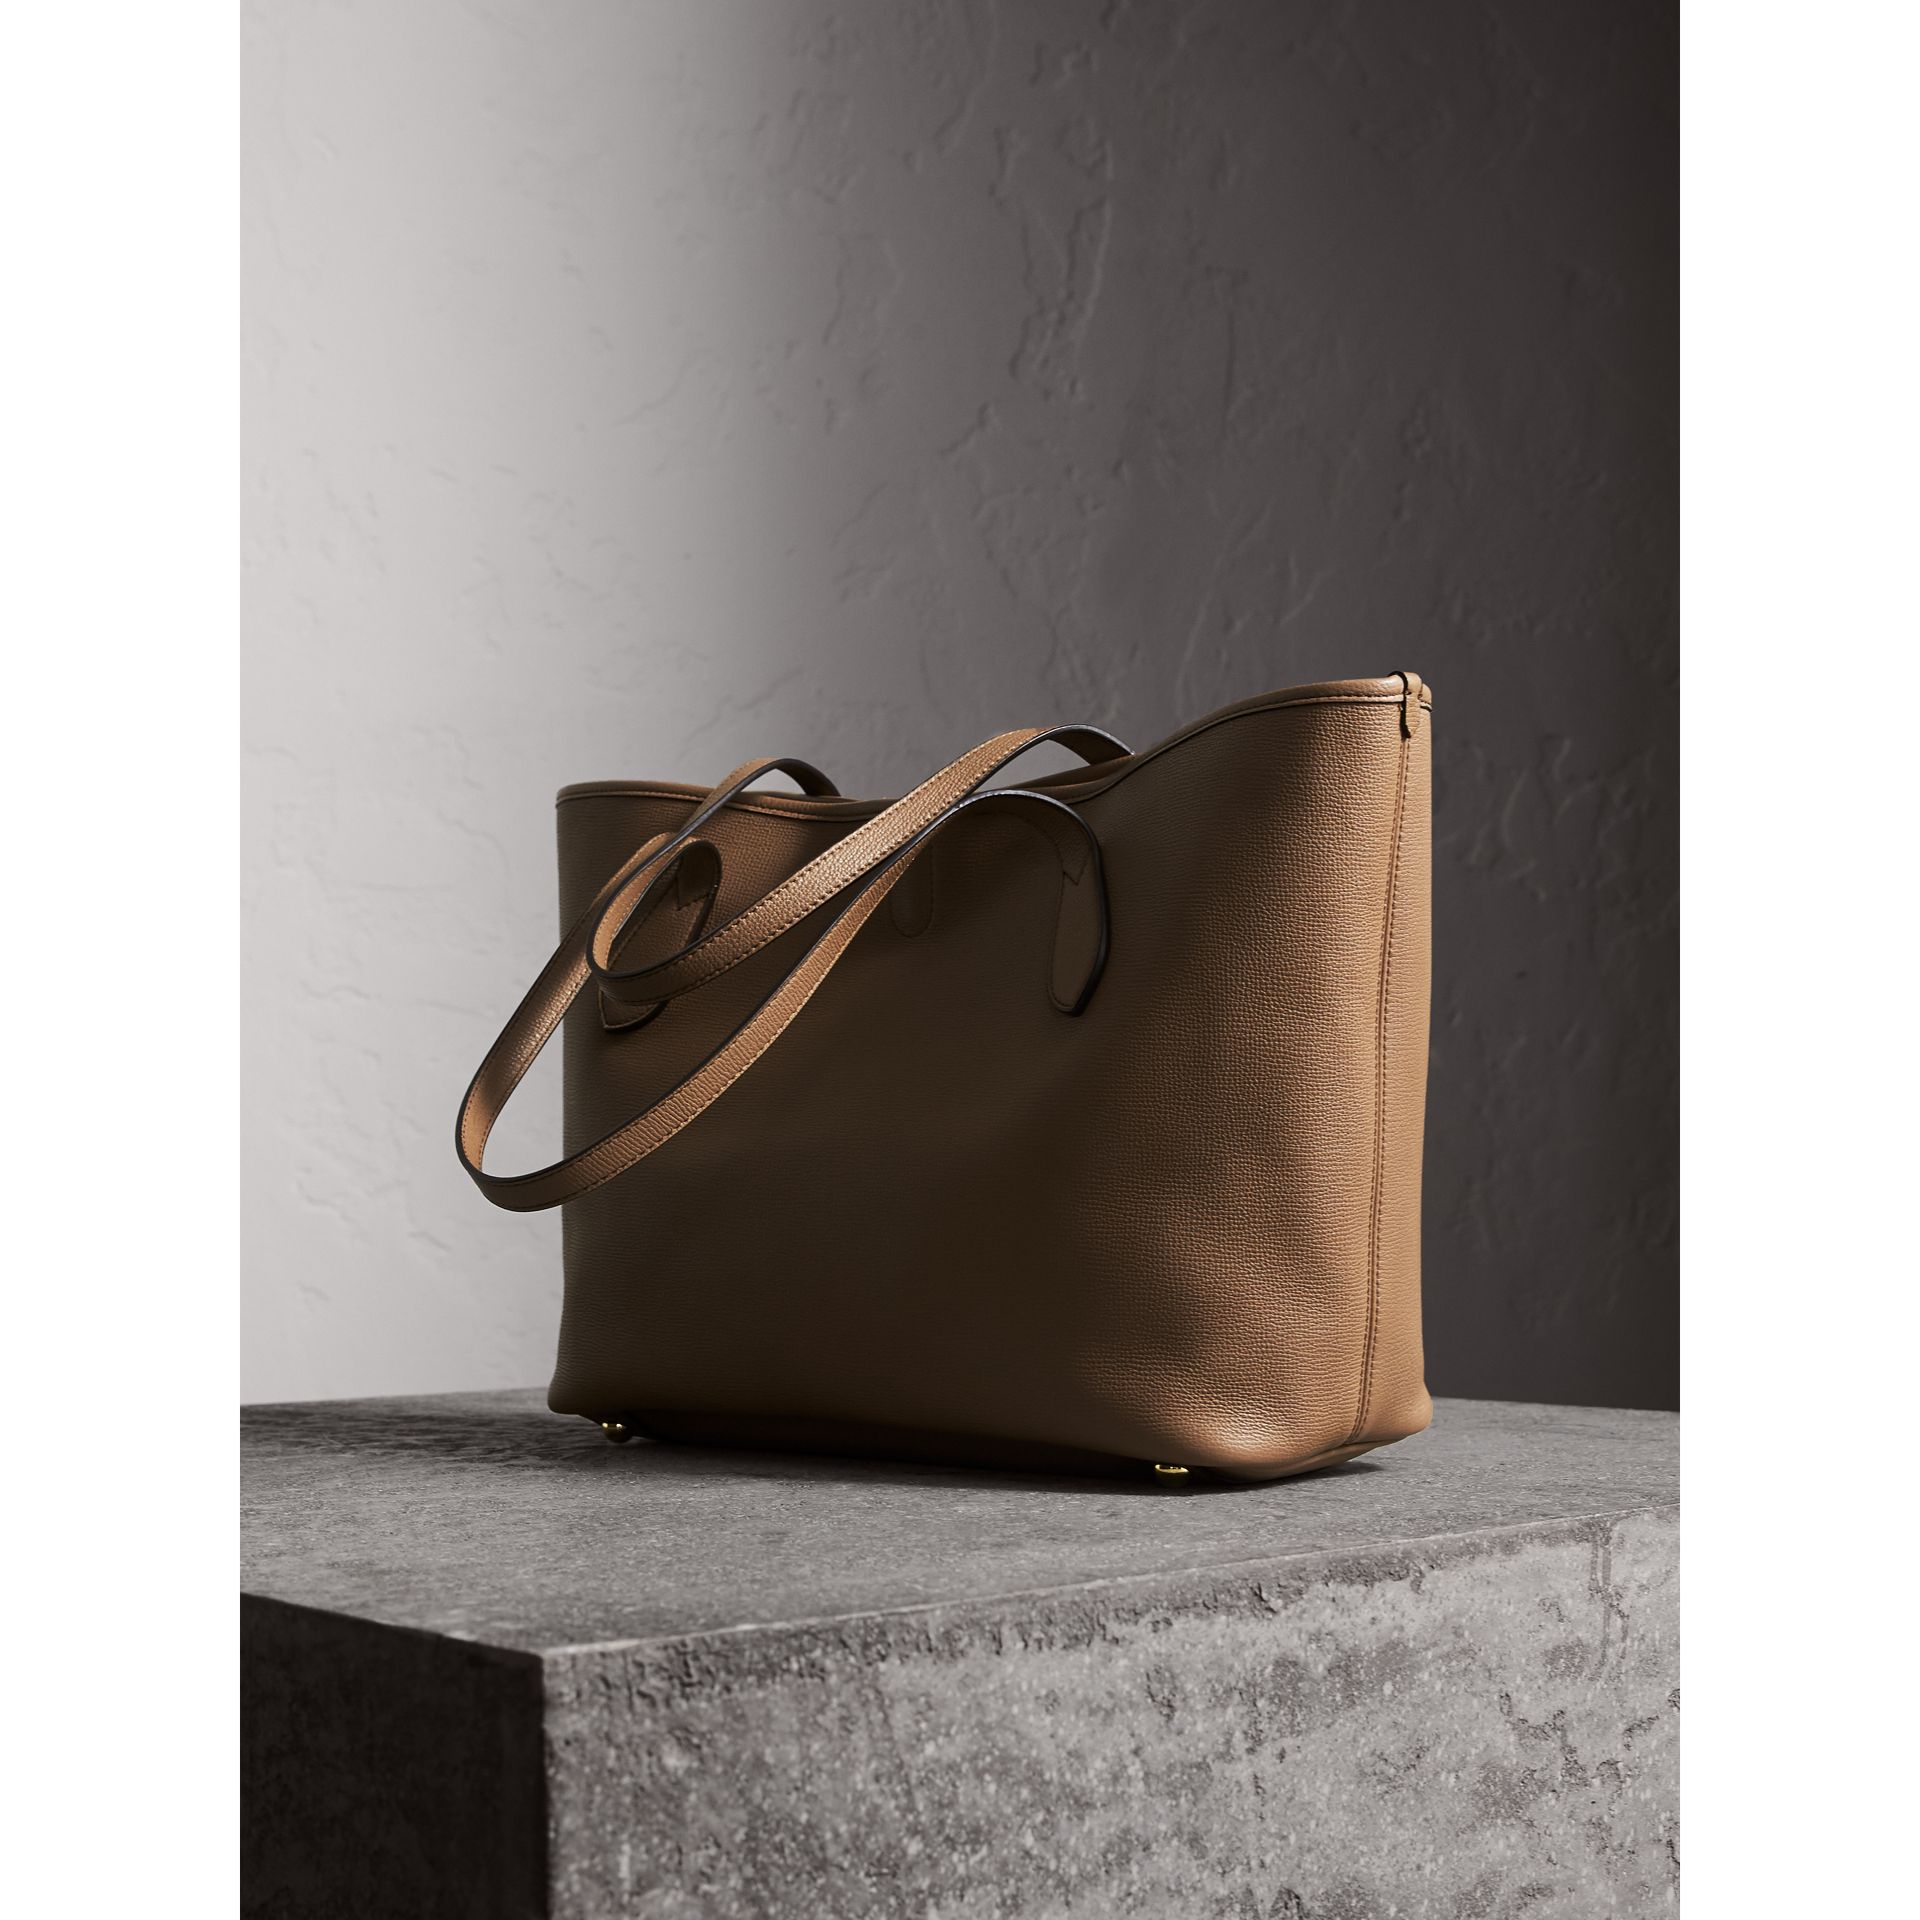 Medium Grainy Leather Tote Bag in Dark Sand - Women | Burberry - gallery image 5